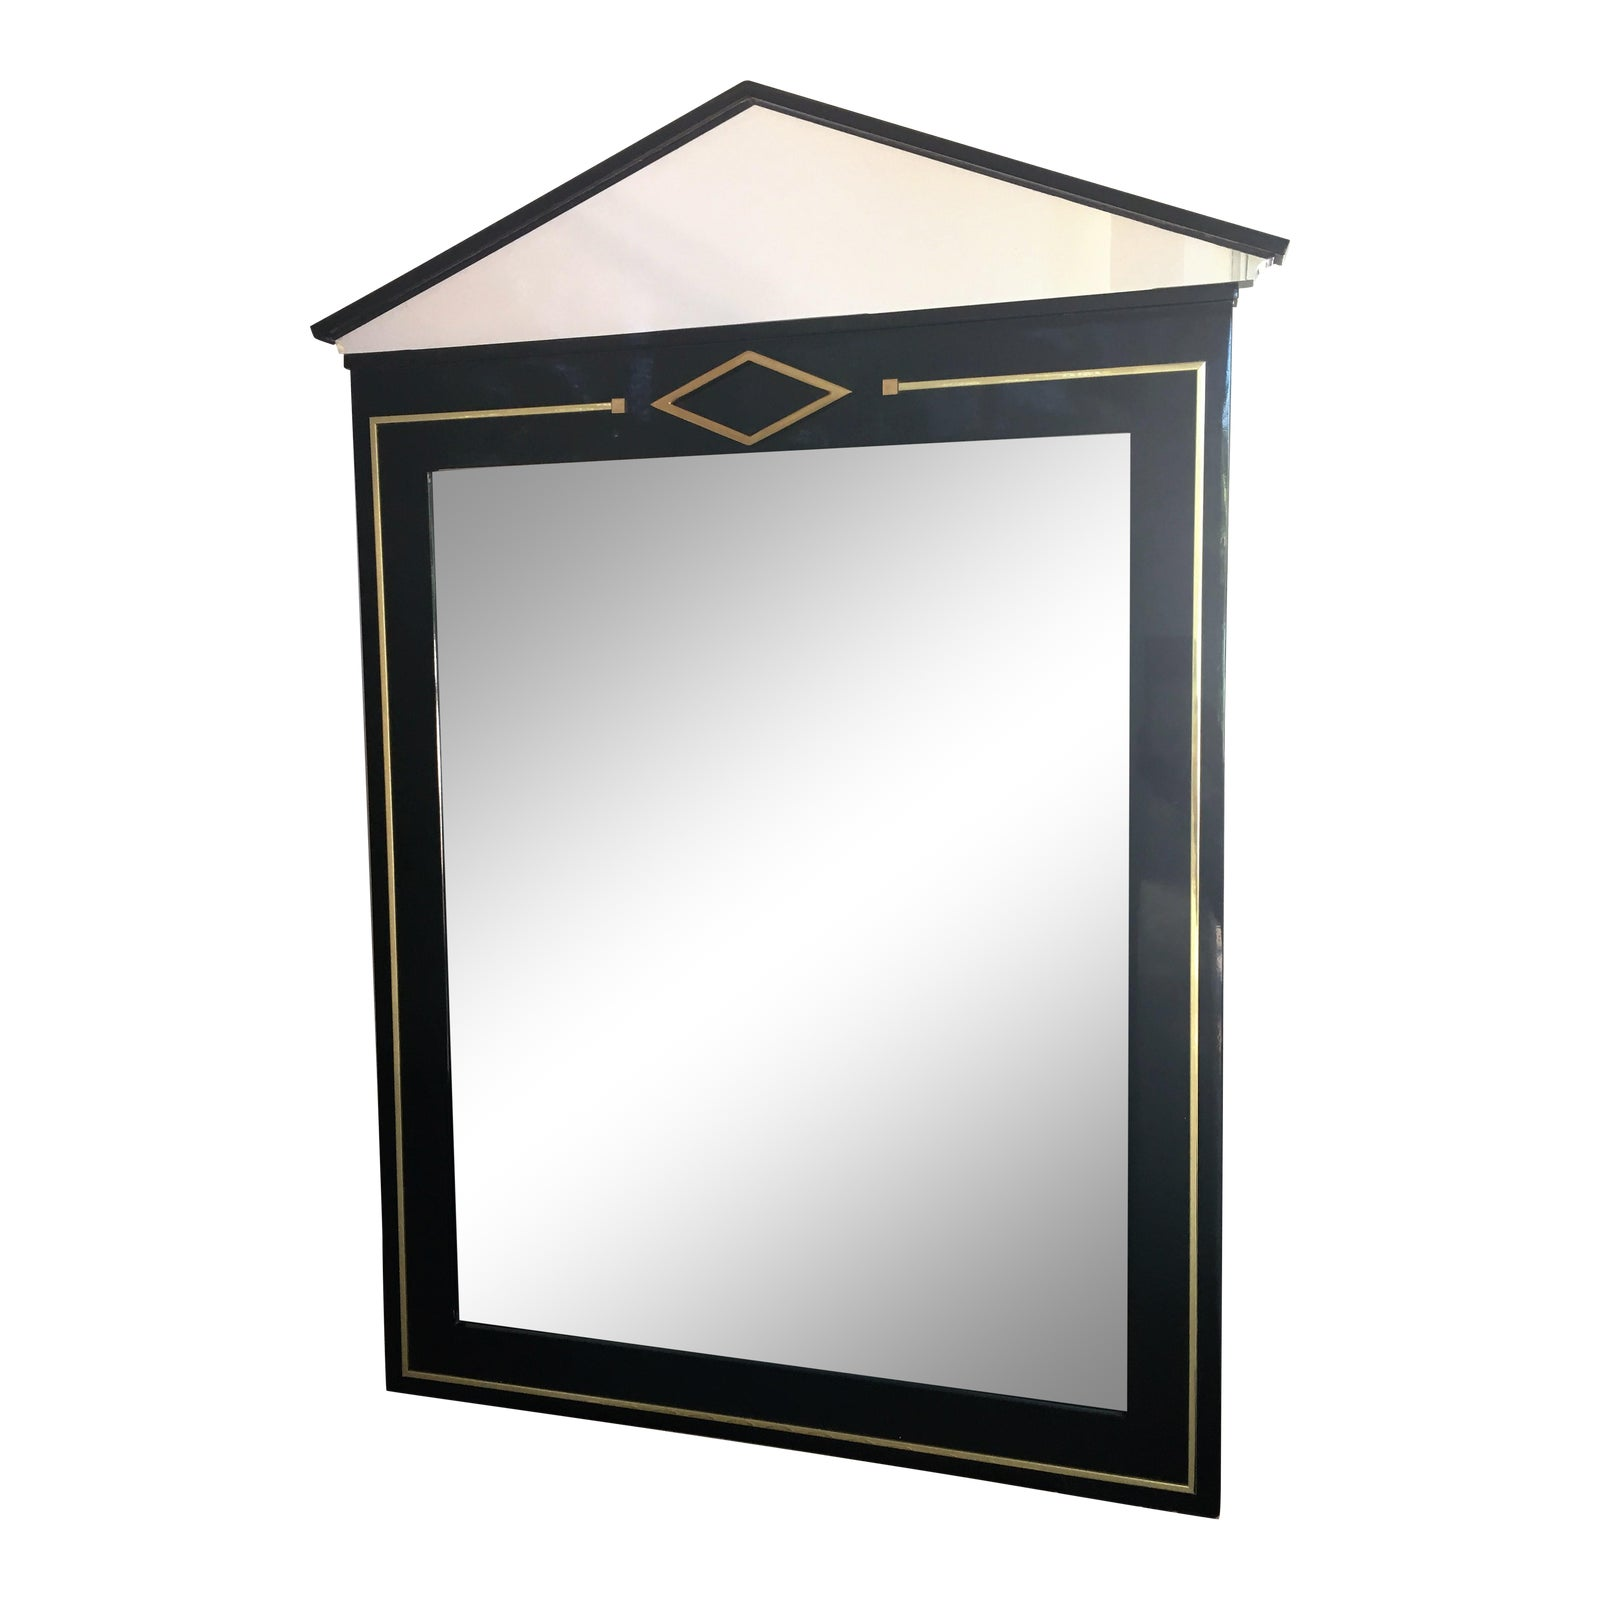 Lucite, Brass And Black Modern Art Deco Glass Mirror In